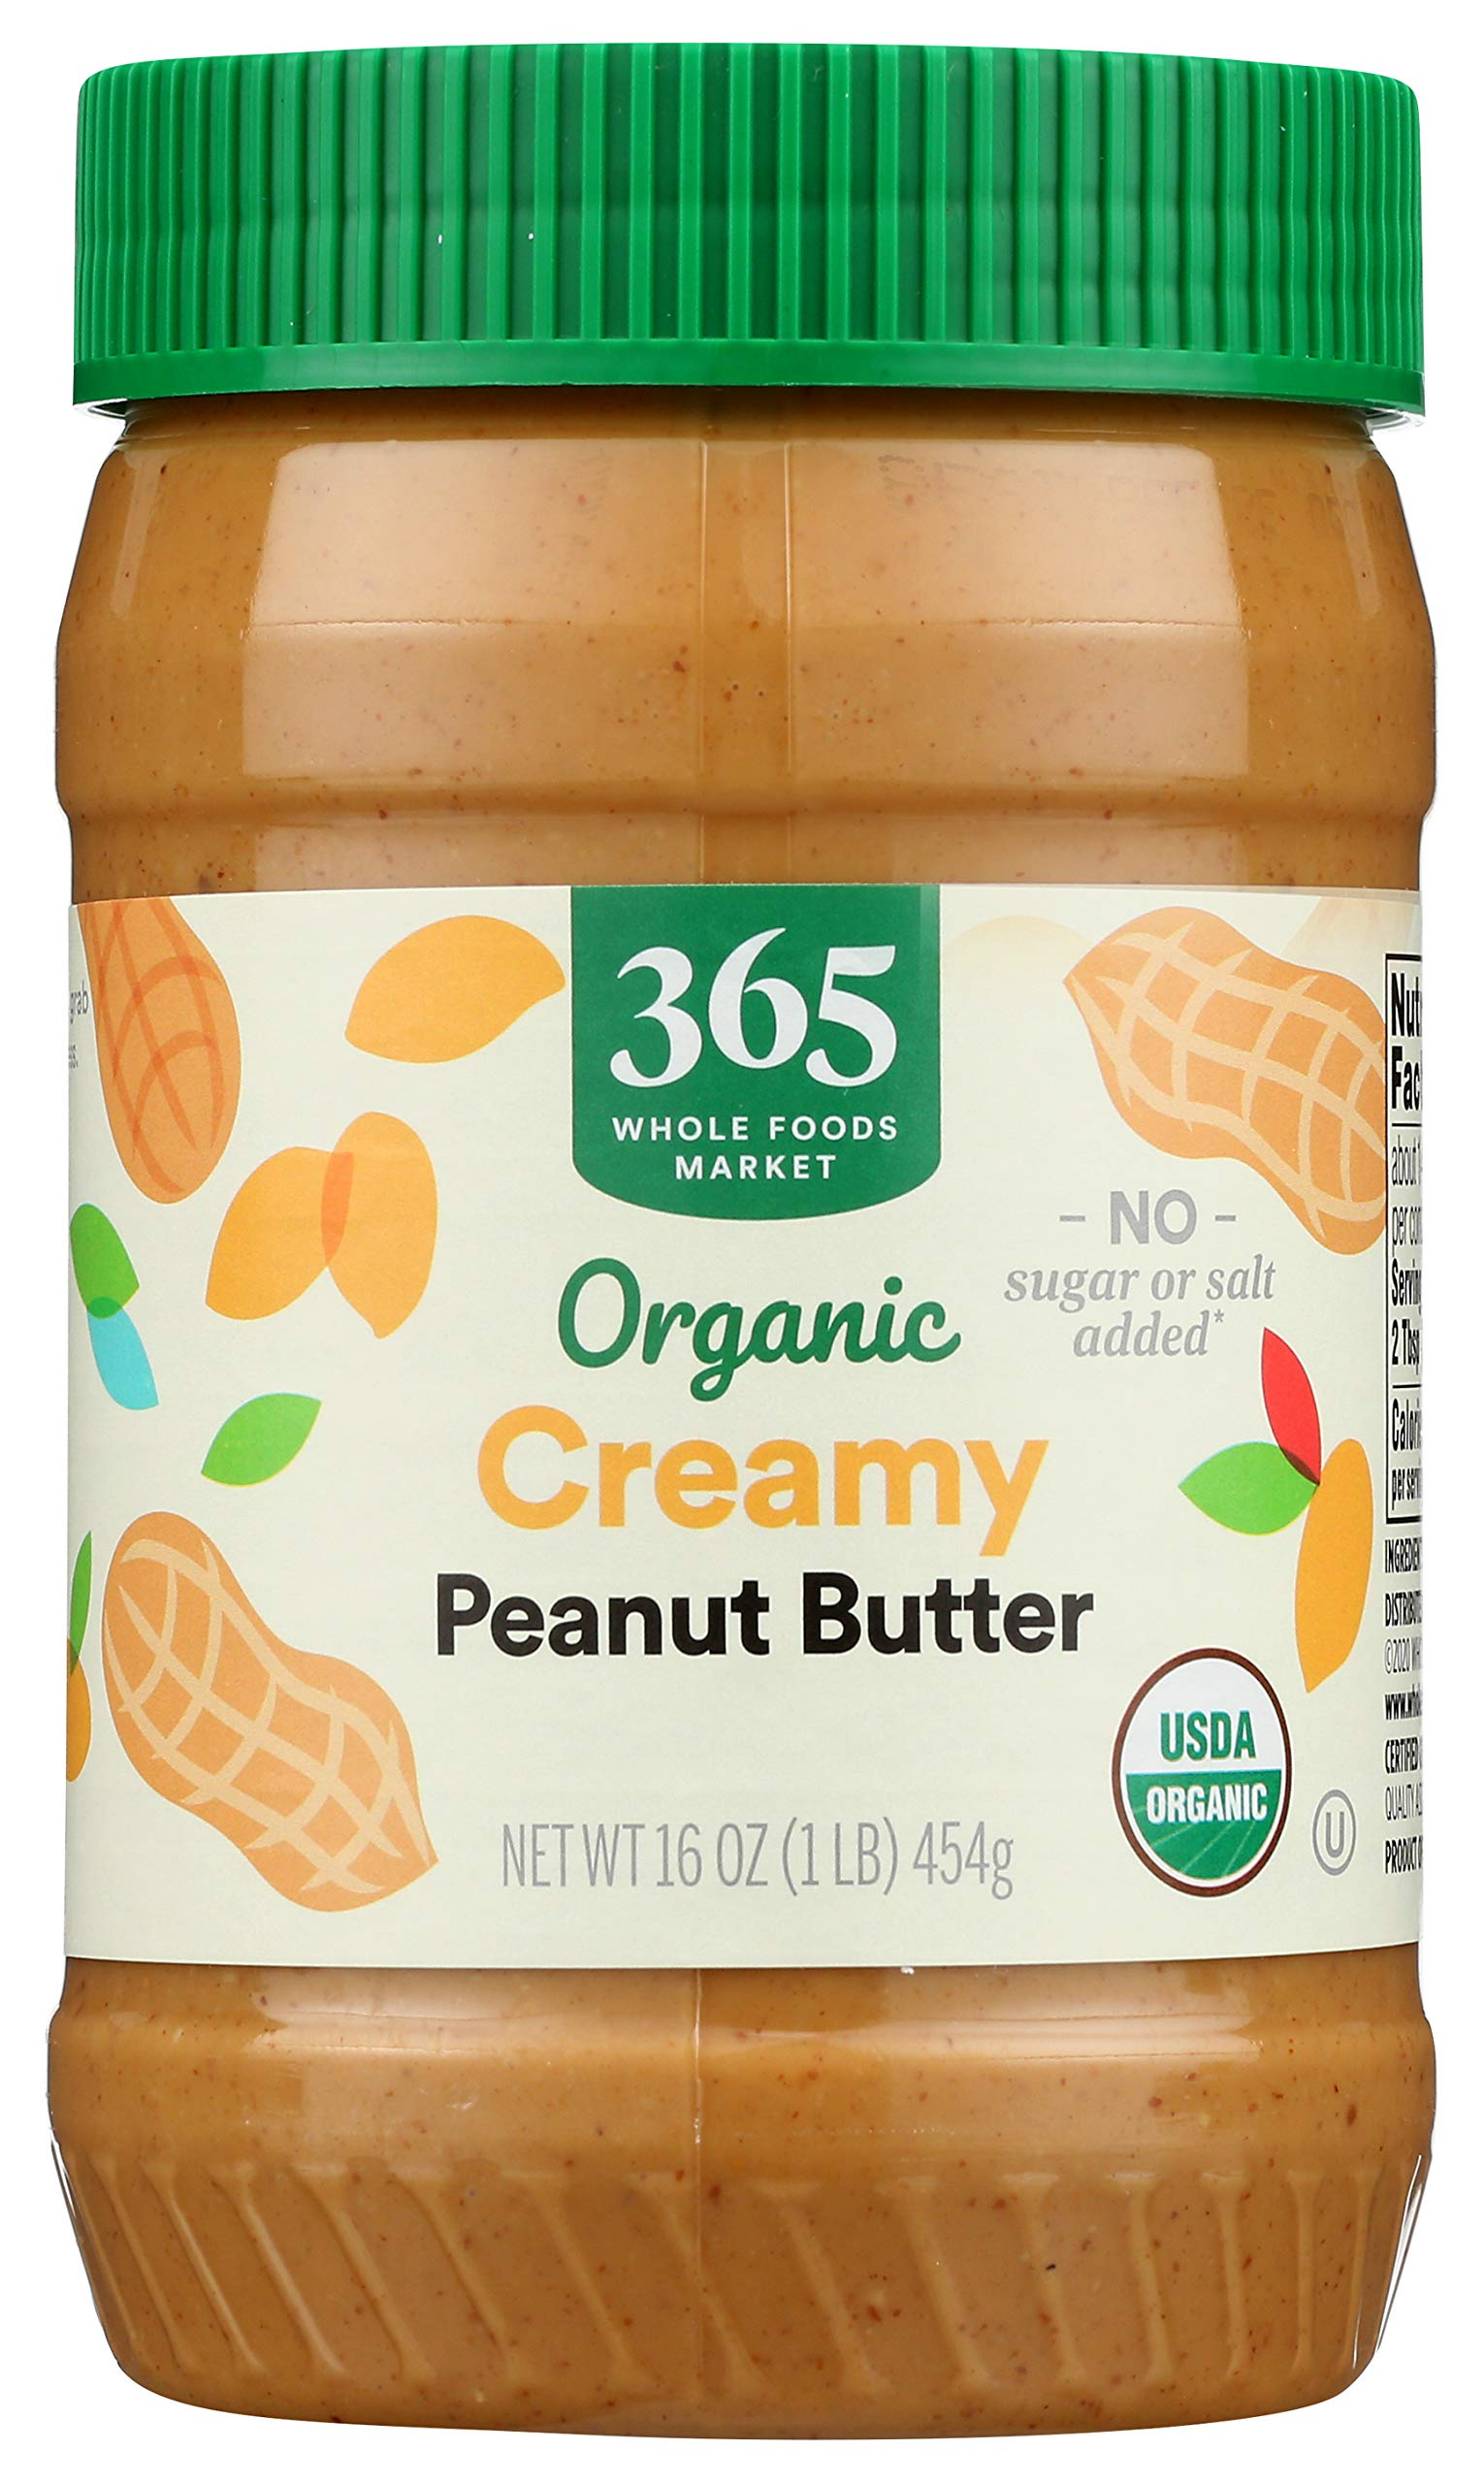 365 by Whole Foods Market, Organic Peanut Butter, Creamy - No Sugar or Salt Added, 16 Ounce